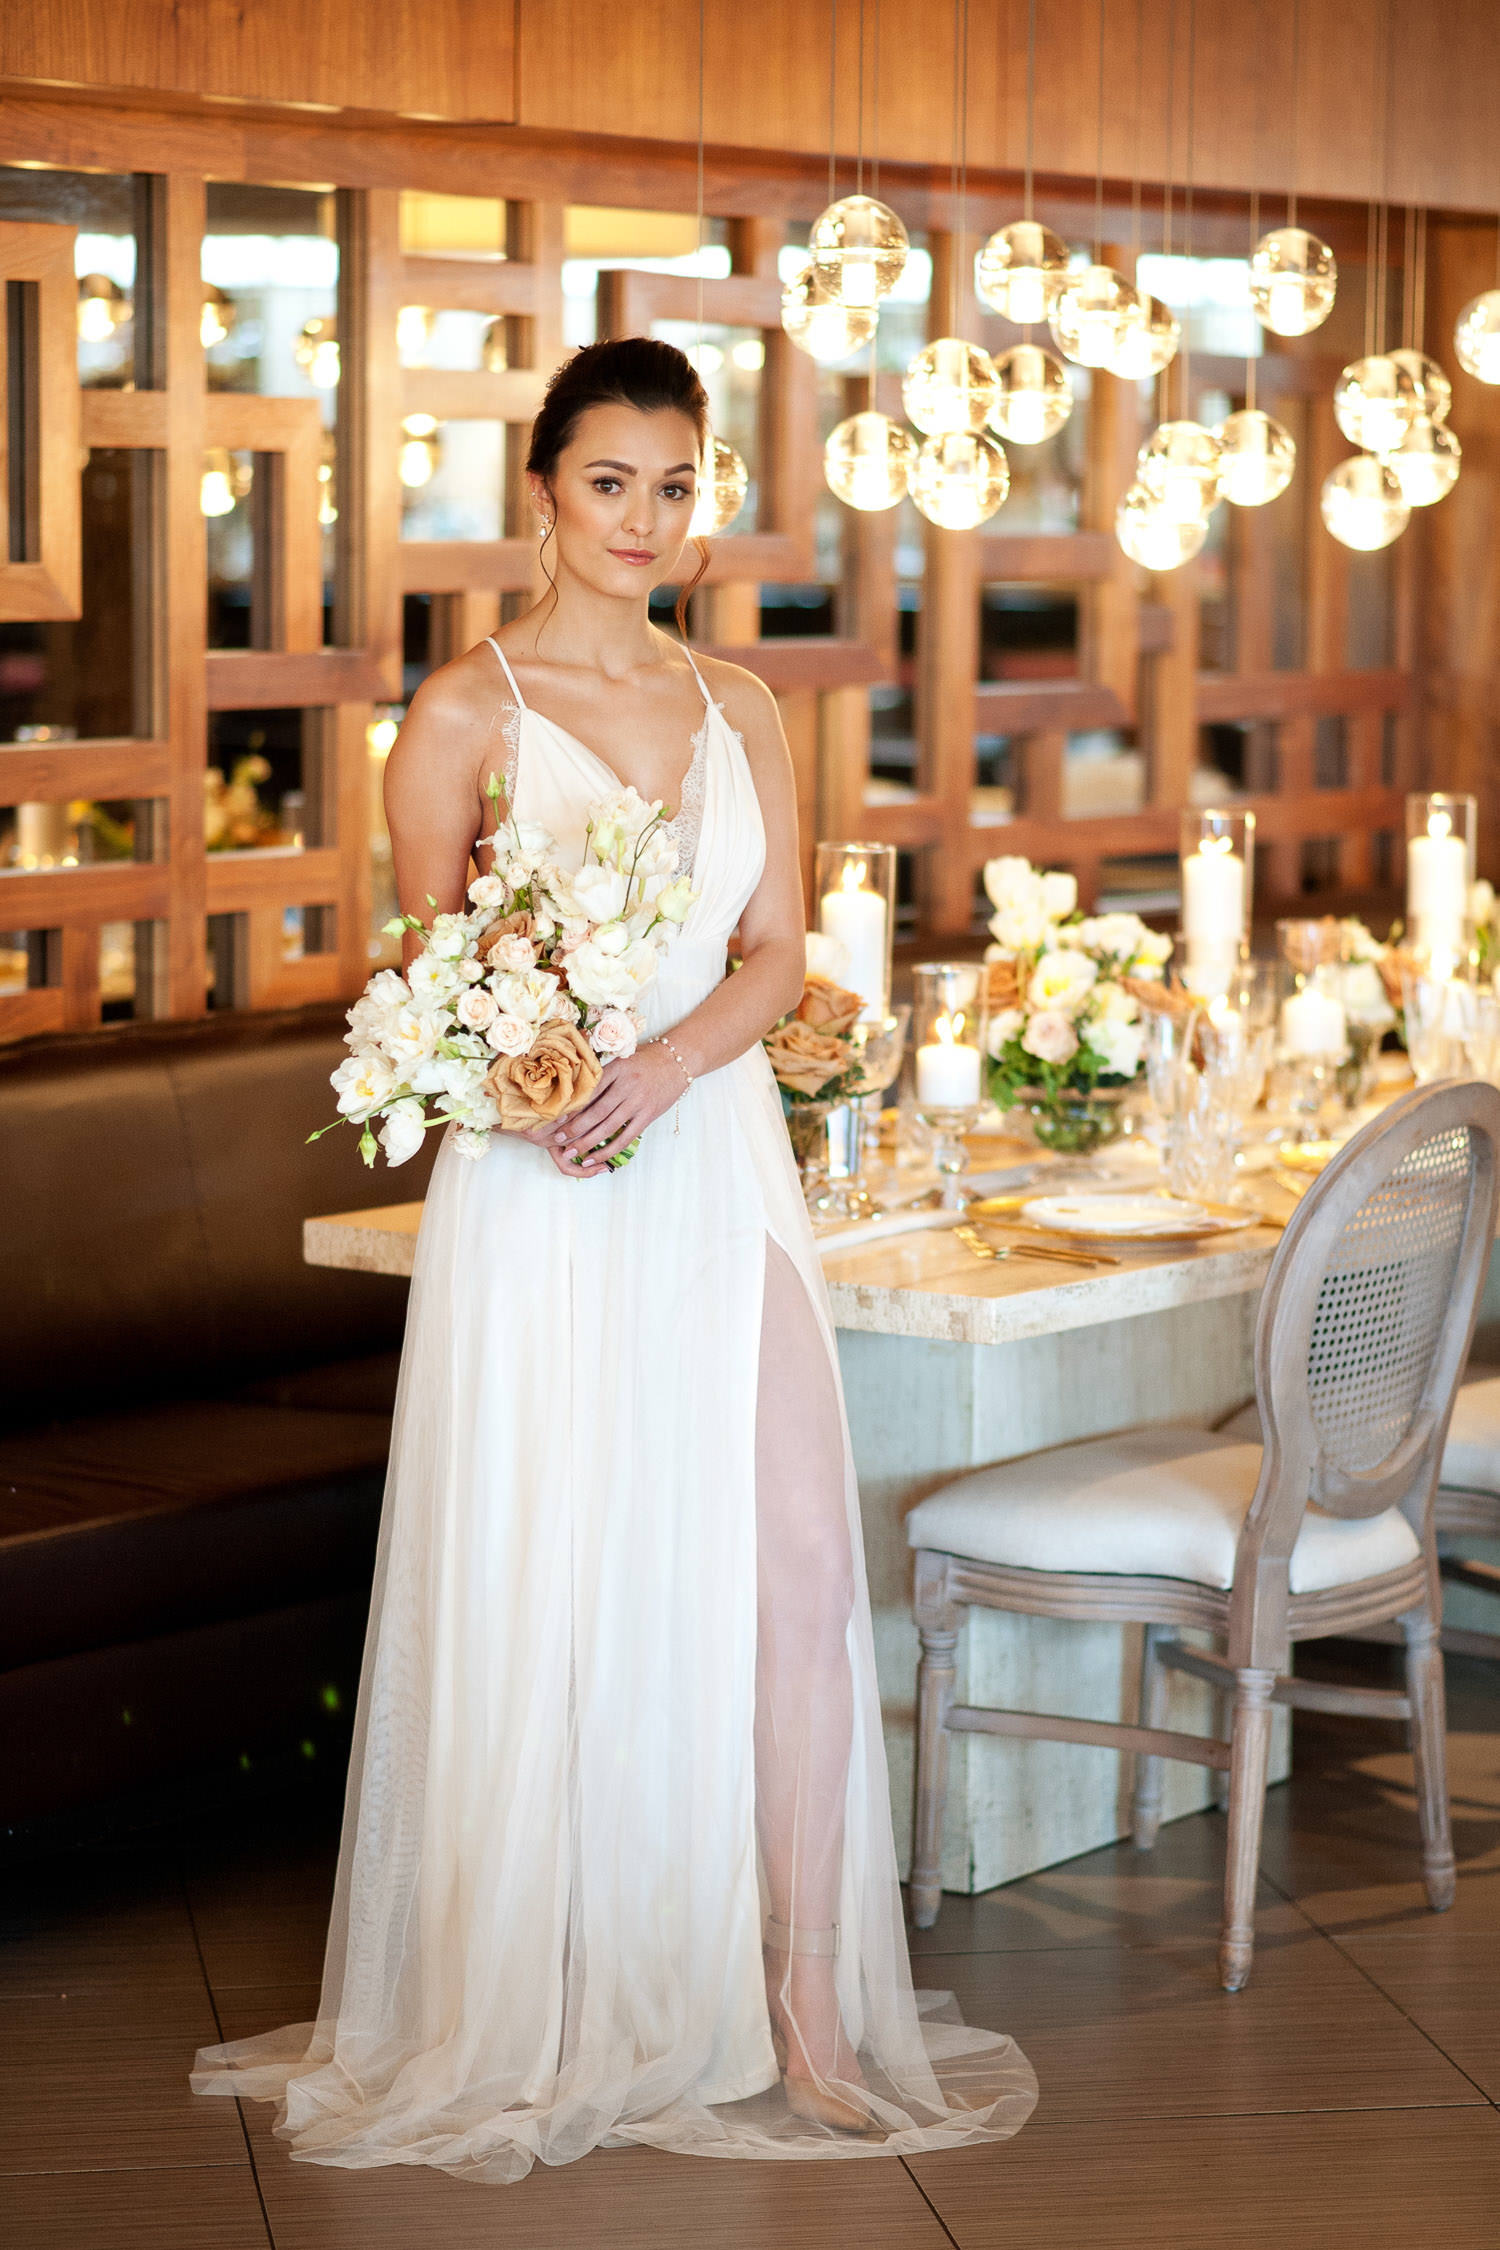 bride at her Alloy Restaurant wedding captured by Tara Whittaker Photography